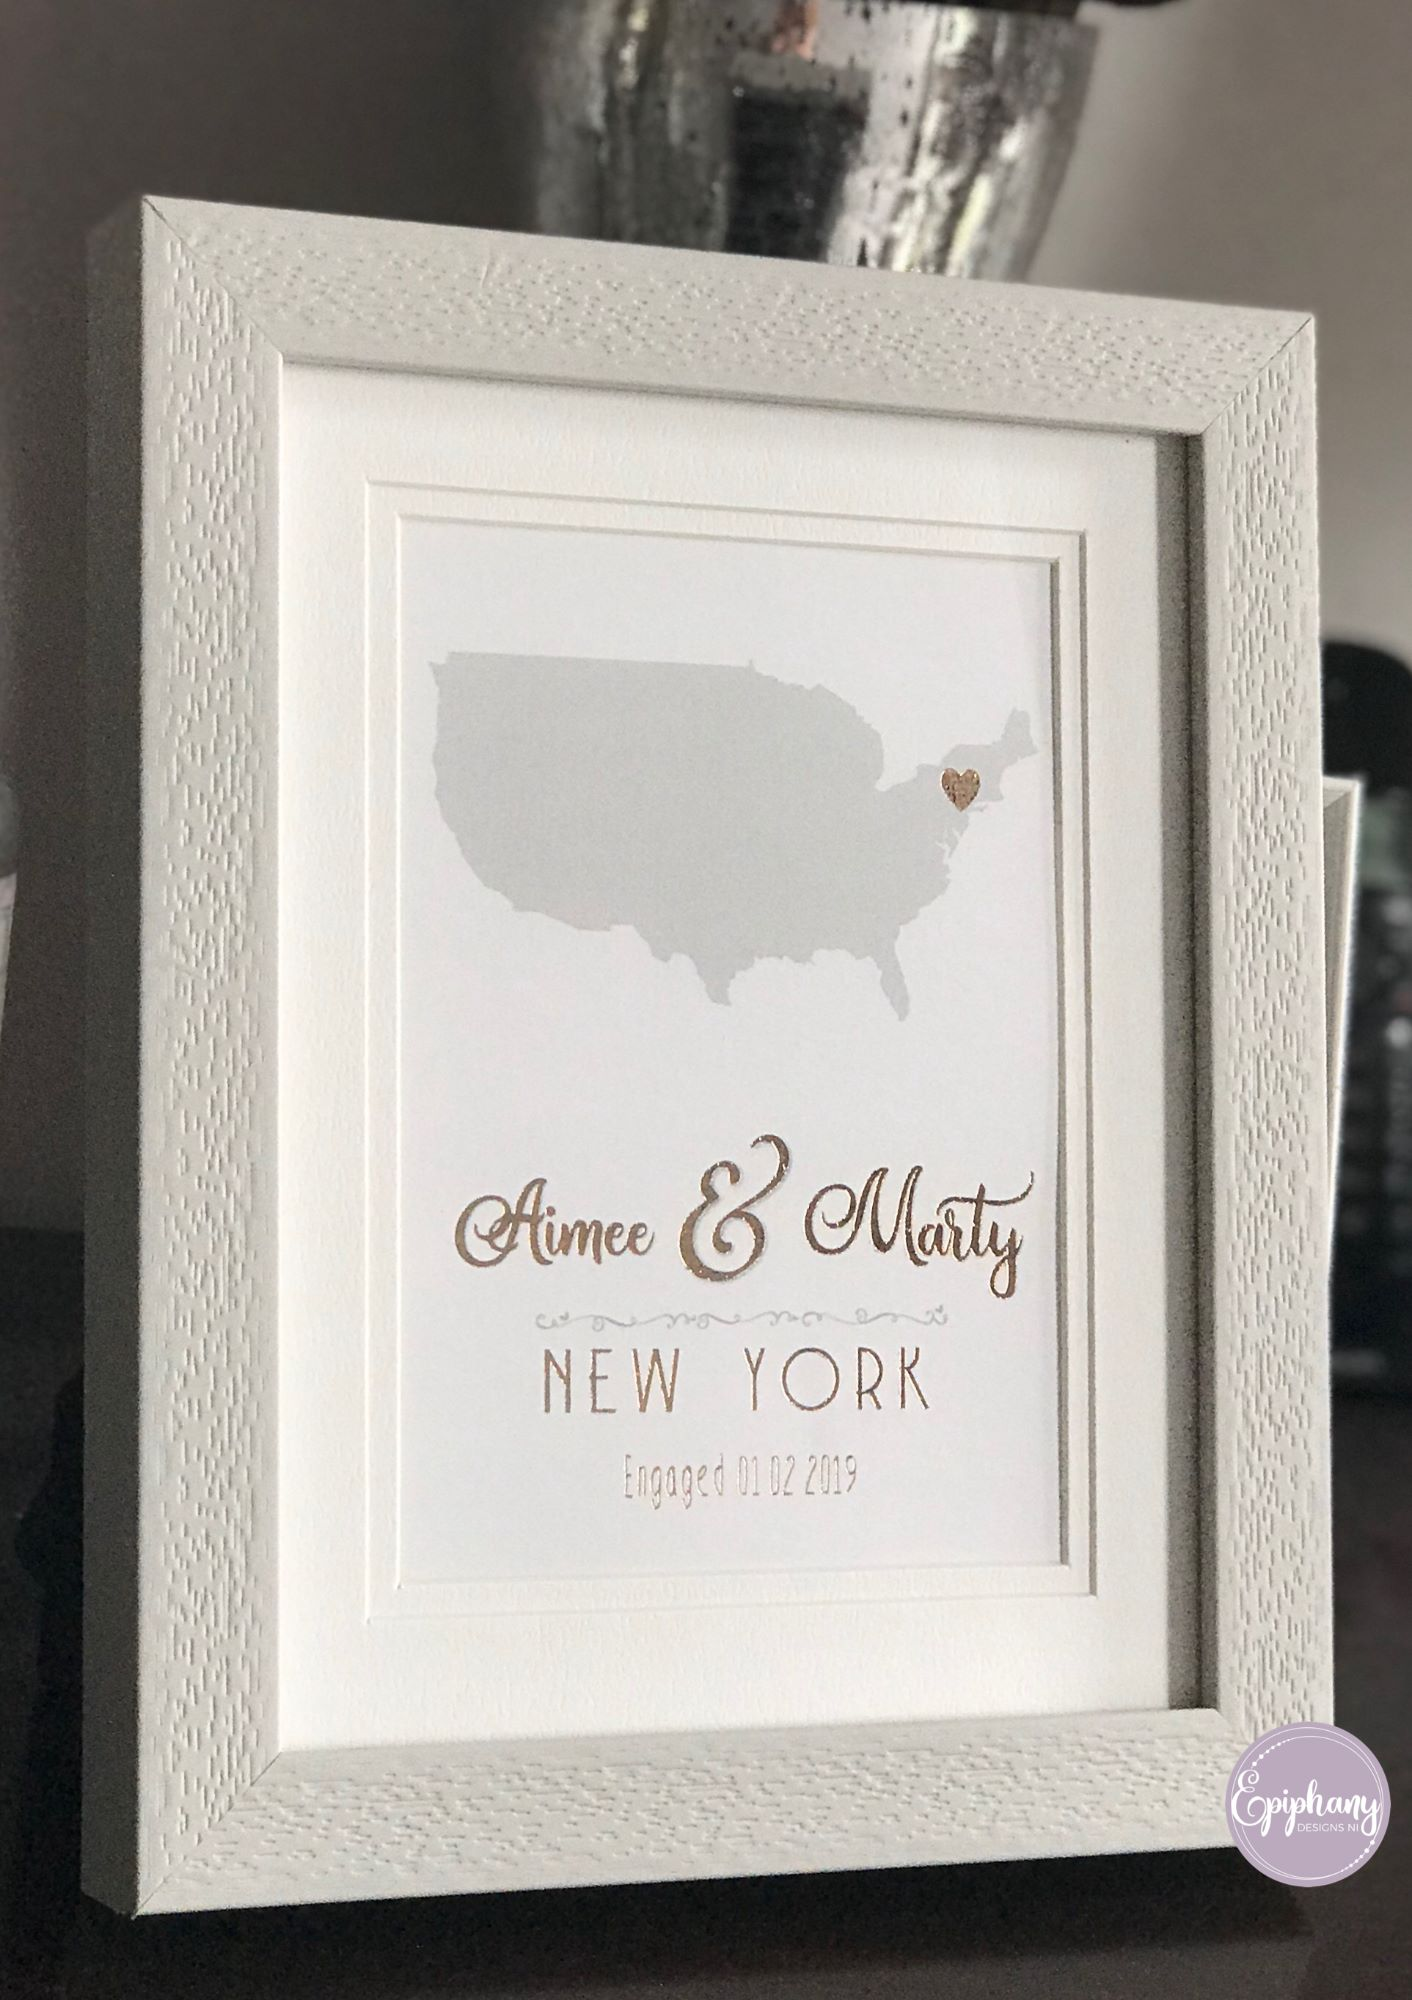 Engagement Foil Print - Country & City engaged